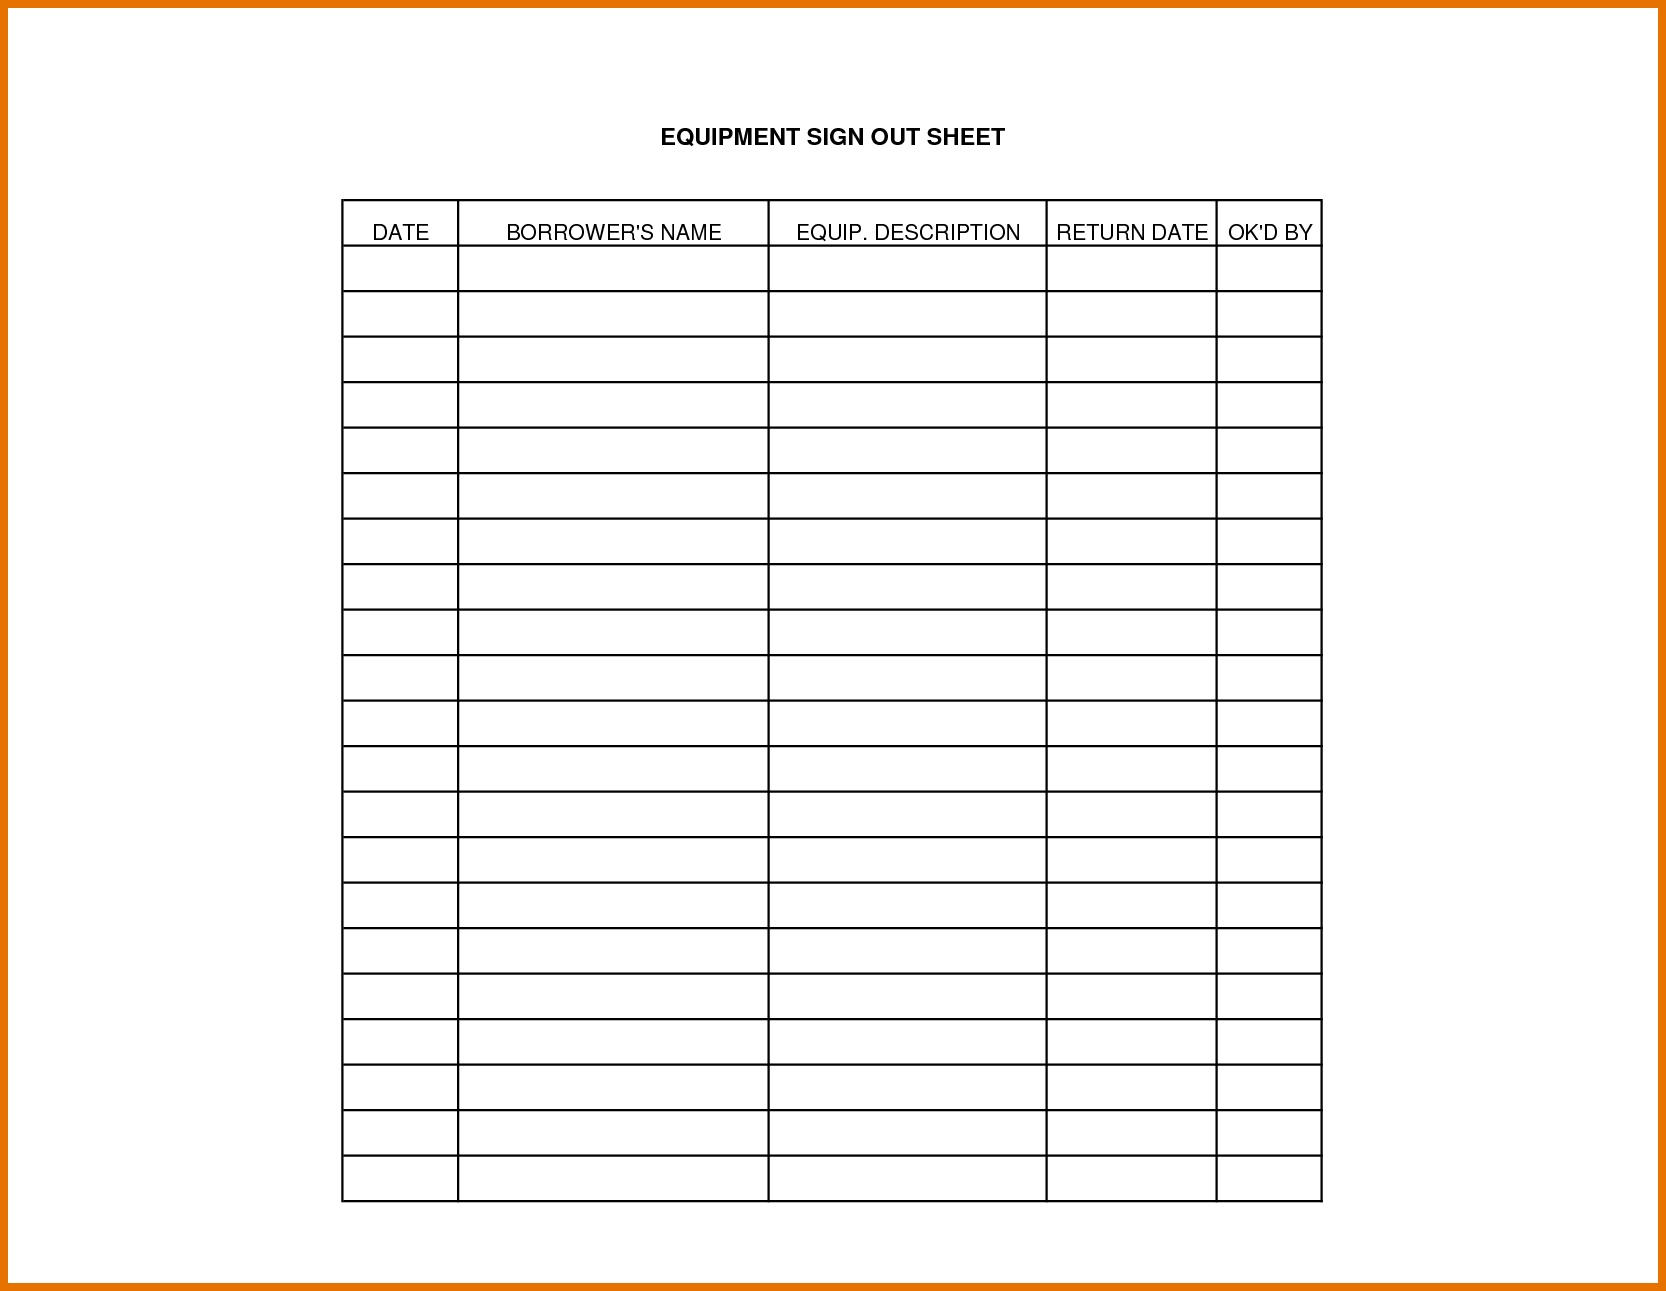 equipment sign out sheet template projects to try pinterest attendance sheet. Black Bedroom Furniture Sets. Home Design Ideas